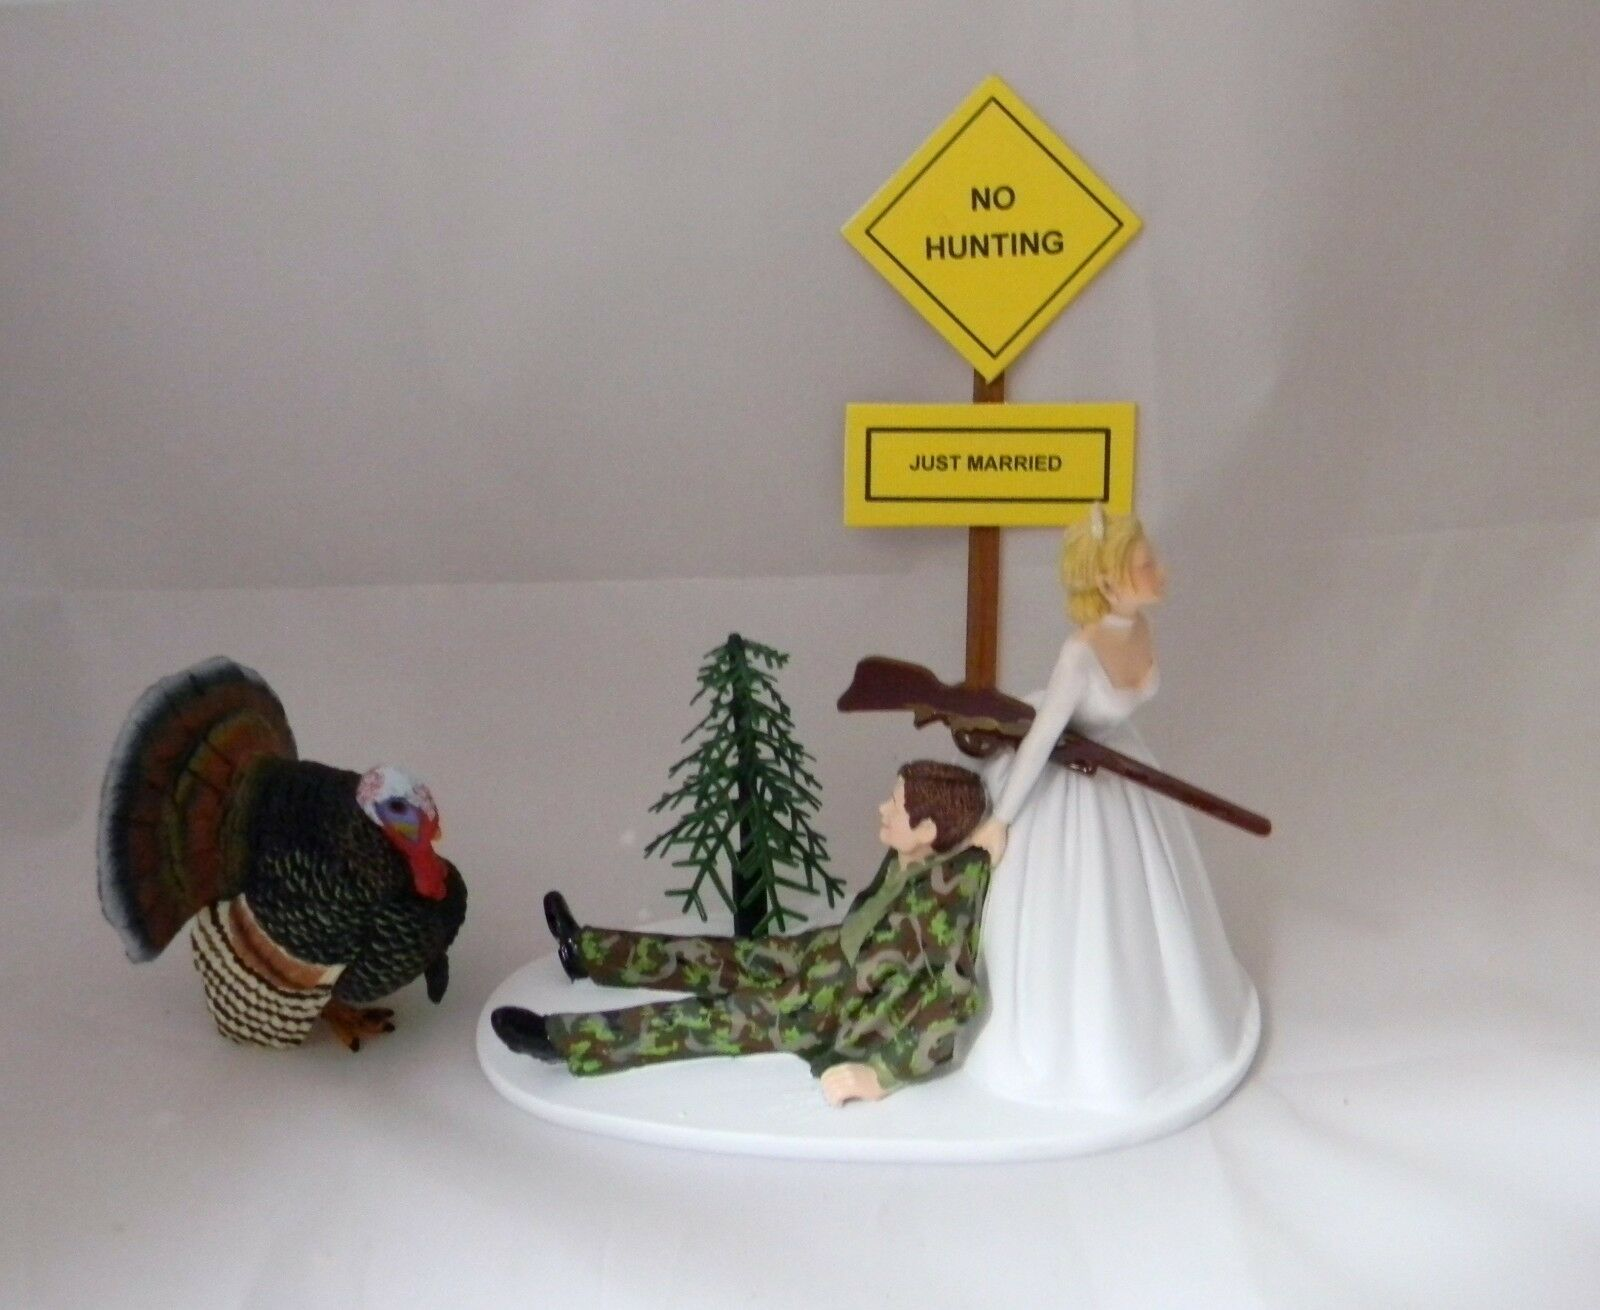 Mariage Fête Réception  Turkey Gobbler  Cake Topper Camo Groom Chasseur Chasse